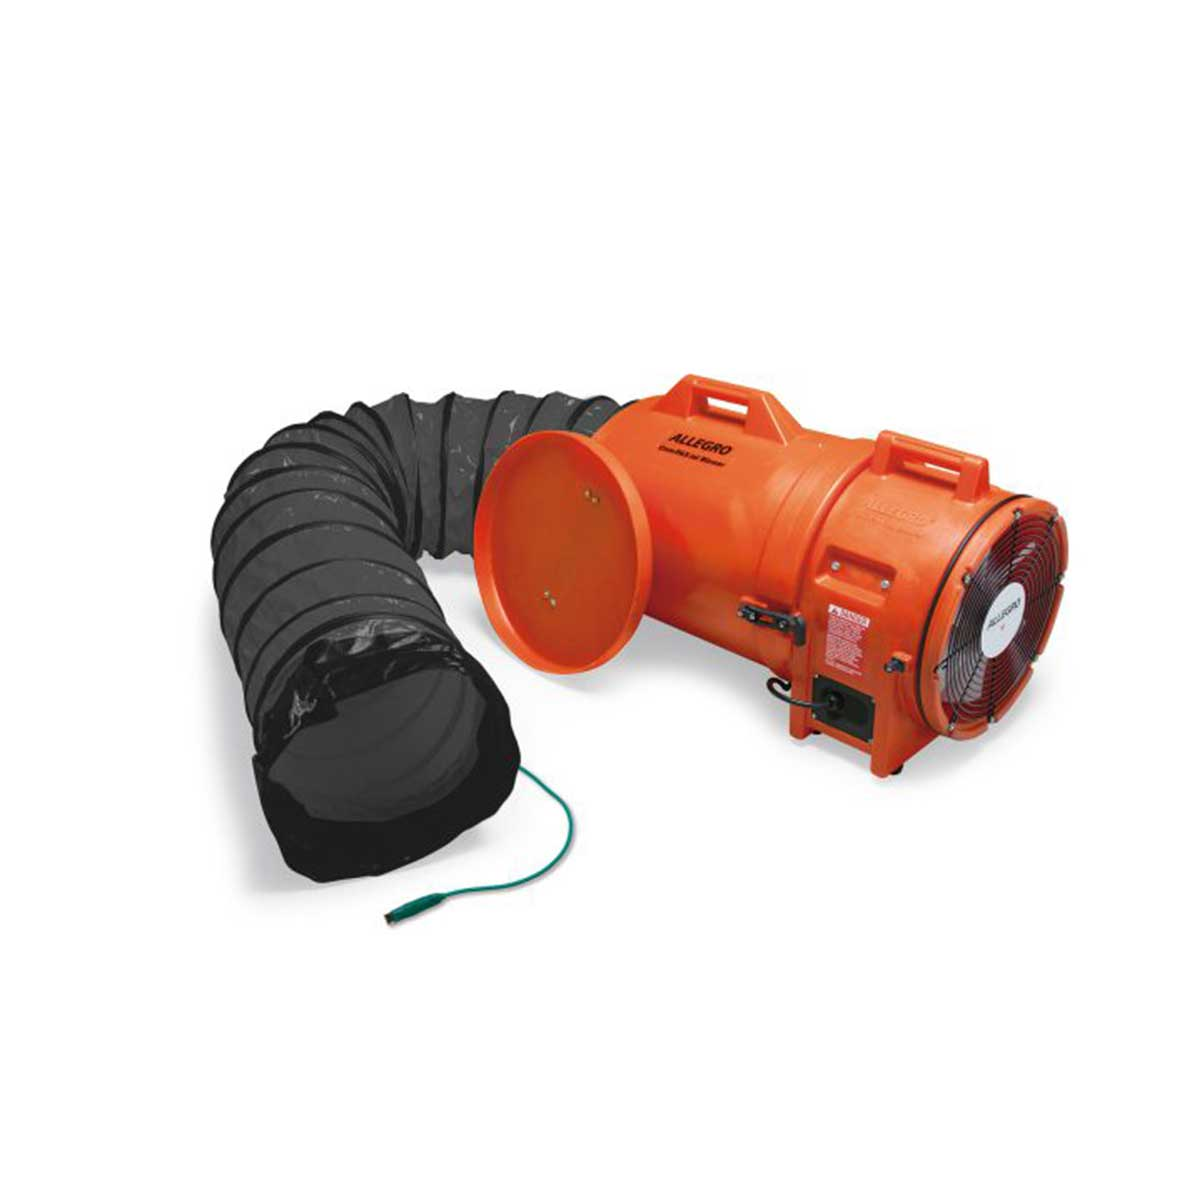 12″ Axial Explosion-Proof (EX) Plastic Blower w/ Canister & 15′ Ducting, 220V/50 Hz. Part: ALL-9548-15E. Pkg: 1